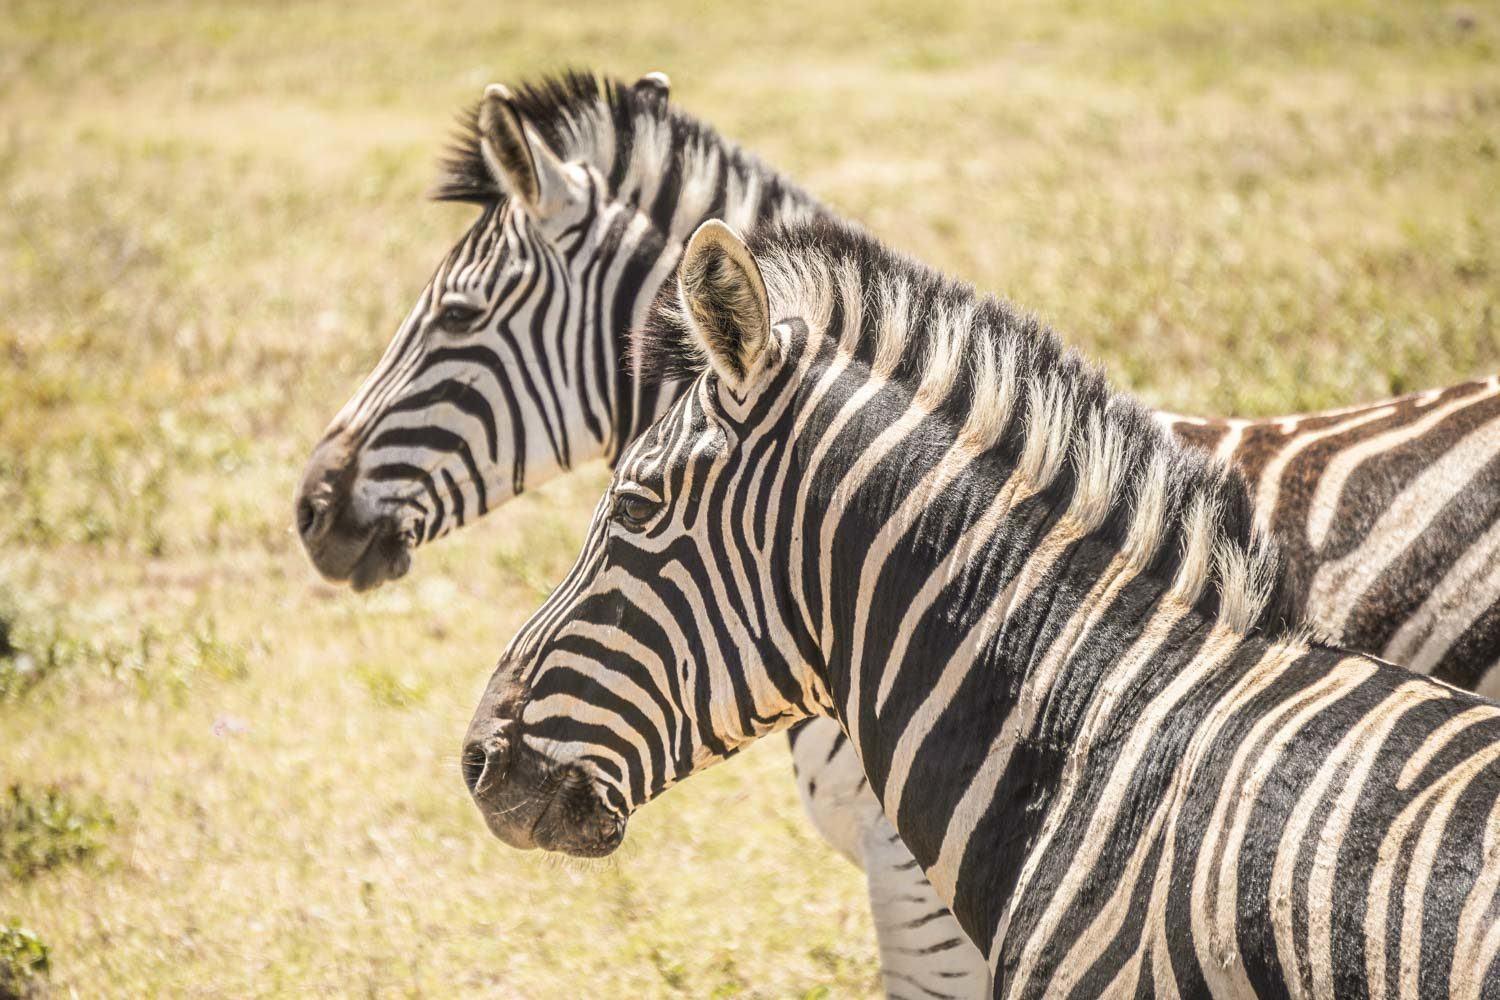 Zebras in Addo Elephant National Park